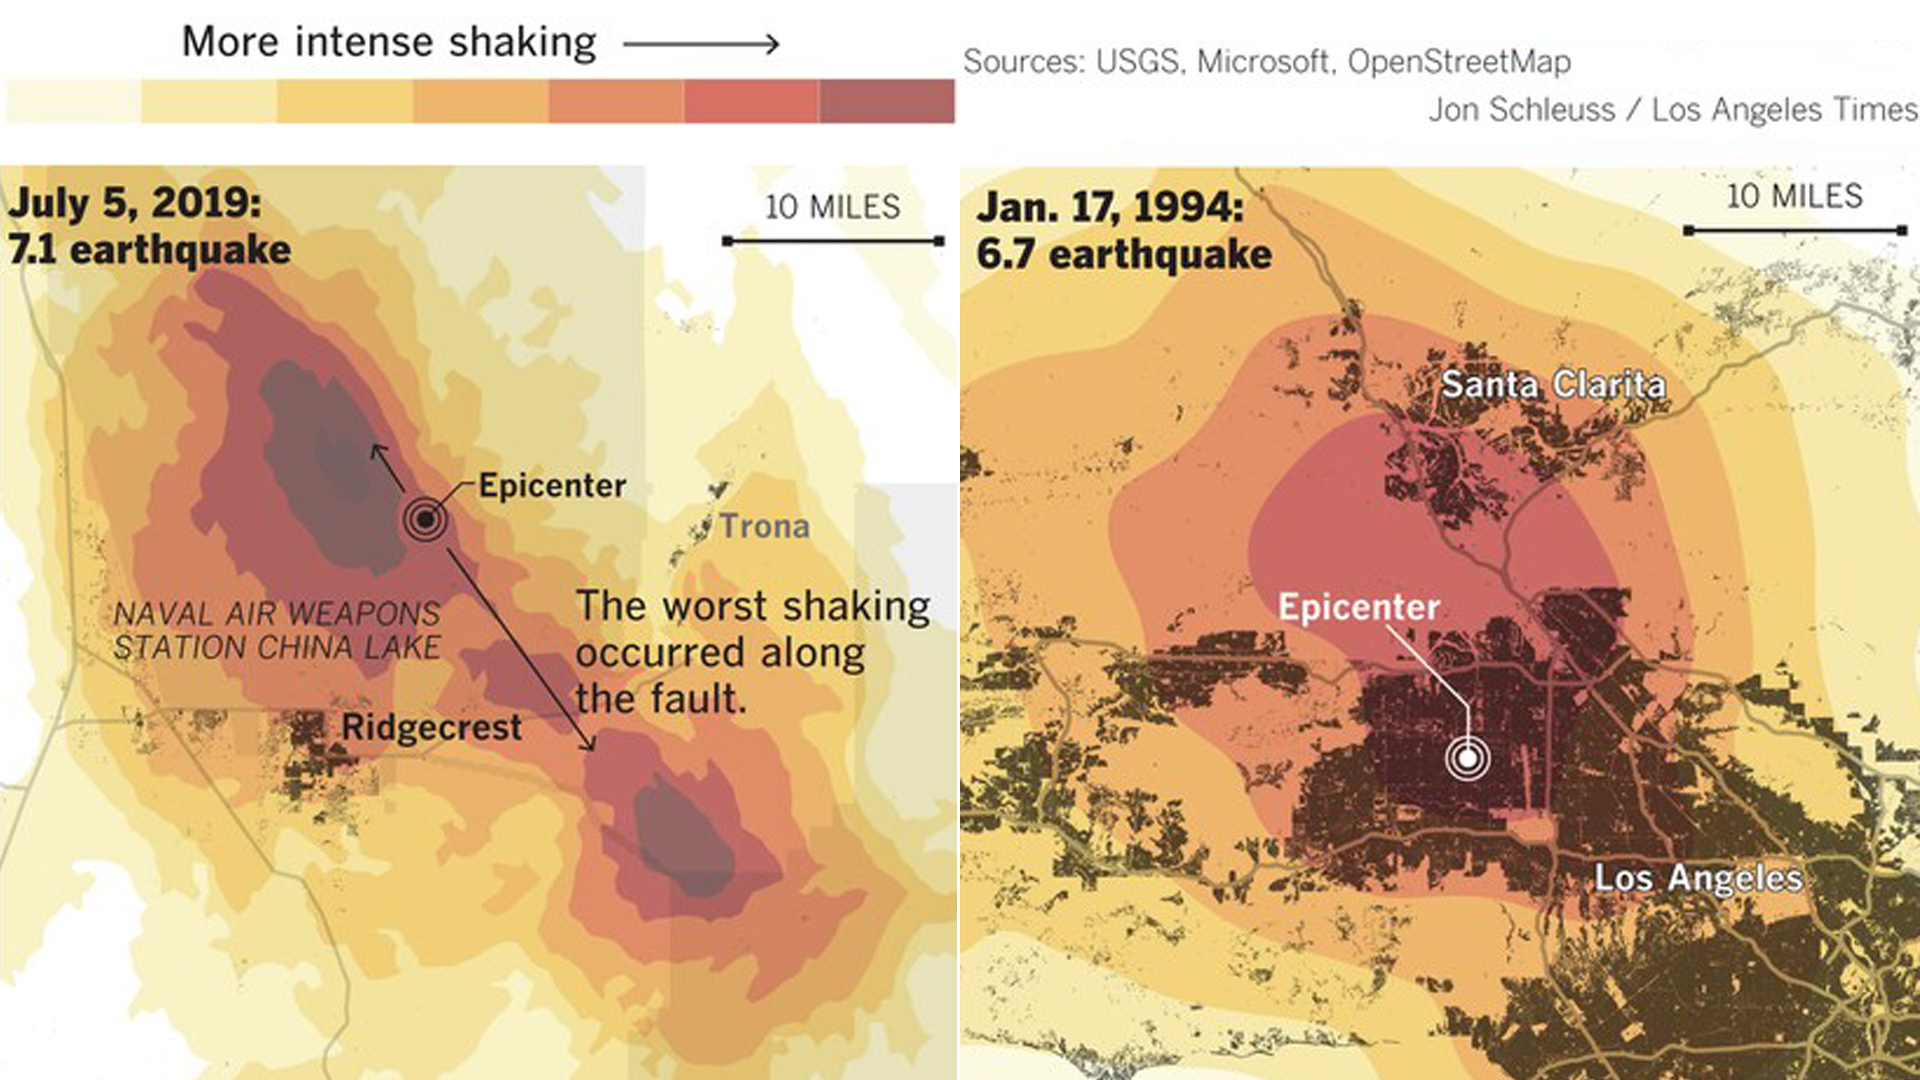 Maps compare the epicenters and impact of the 1994 magnitude 6.7 Northridge quake and the July 5, 2019 temblor that struck near Ridgecrest and Trona. (Credit: Jon Schleuss/Los Angeles Times)